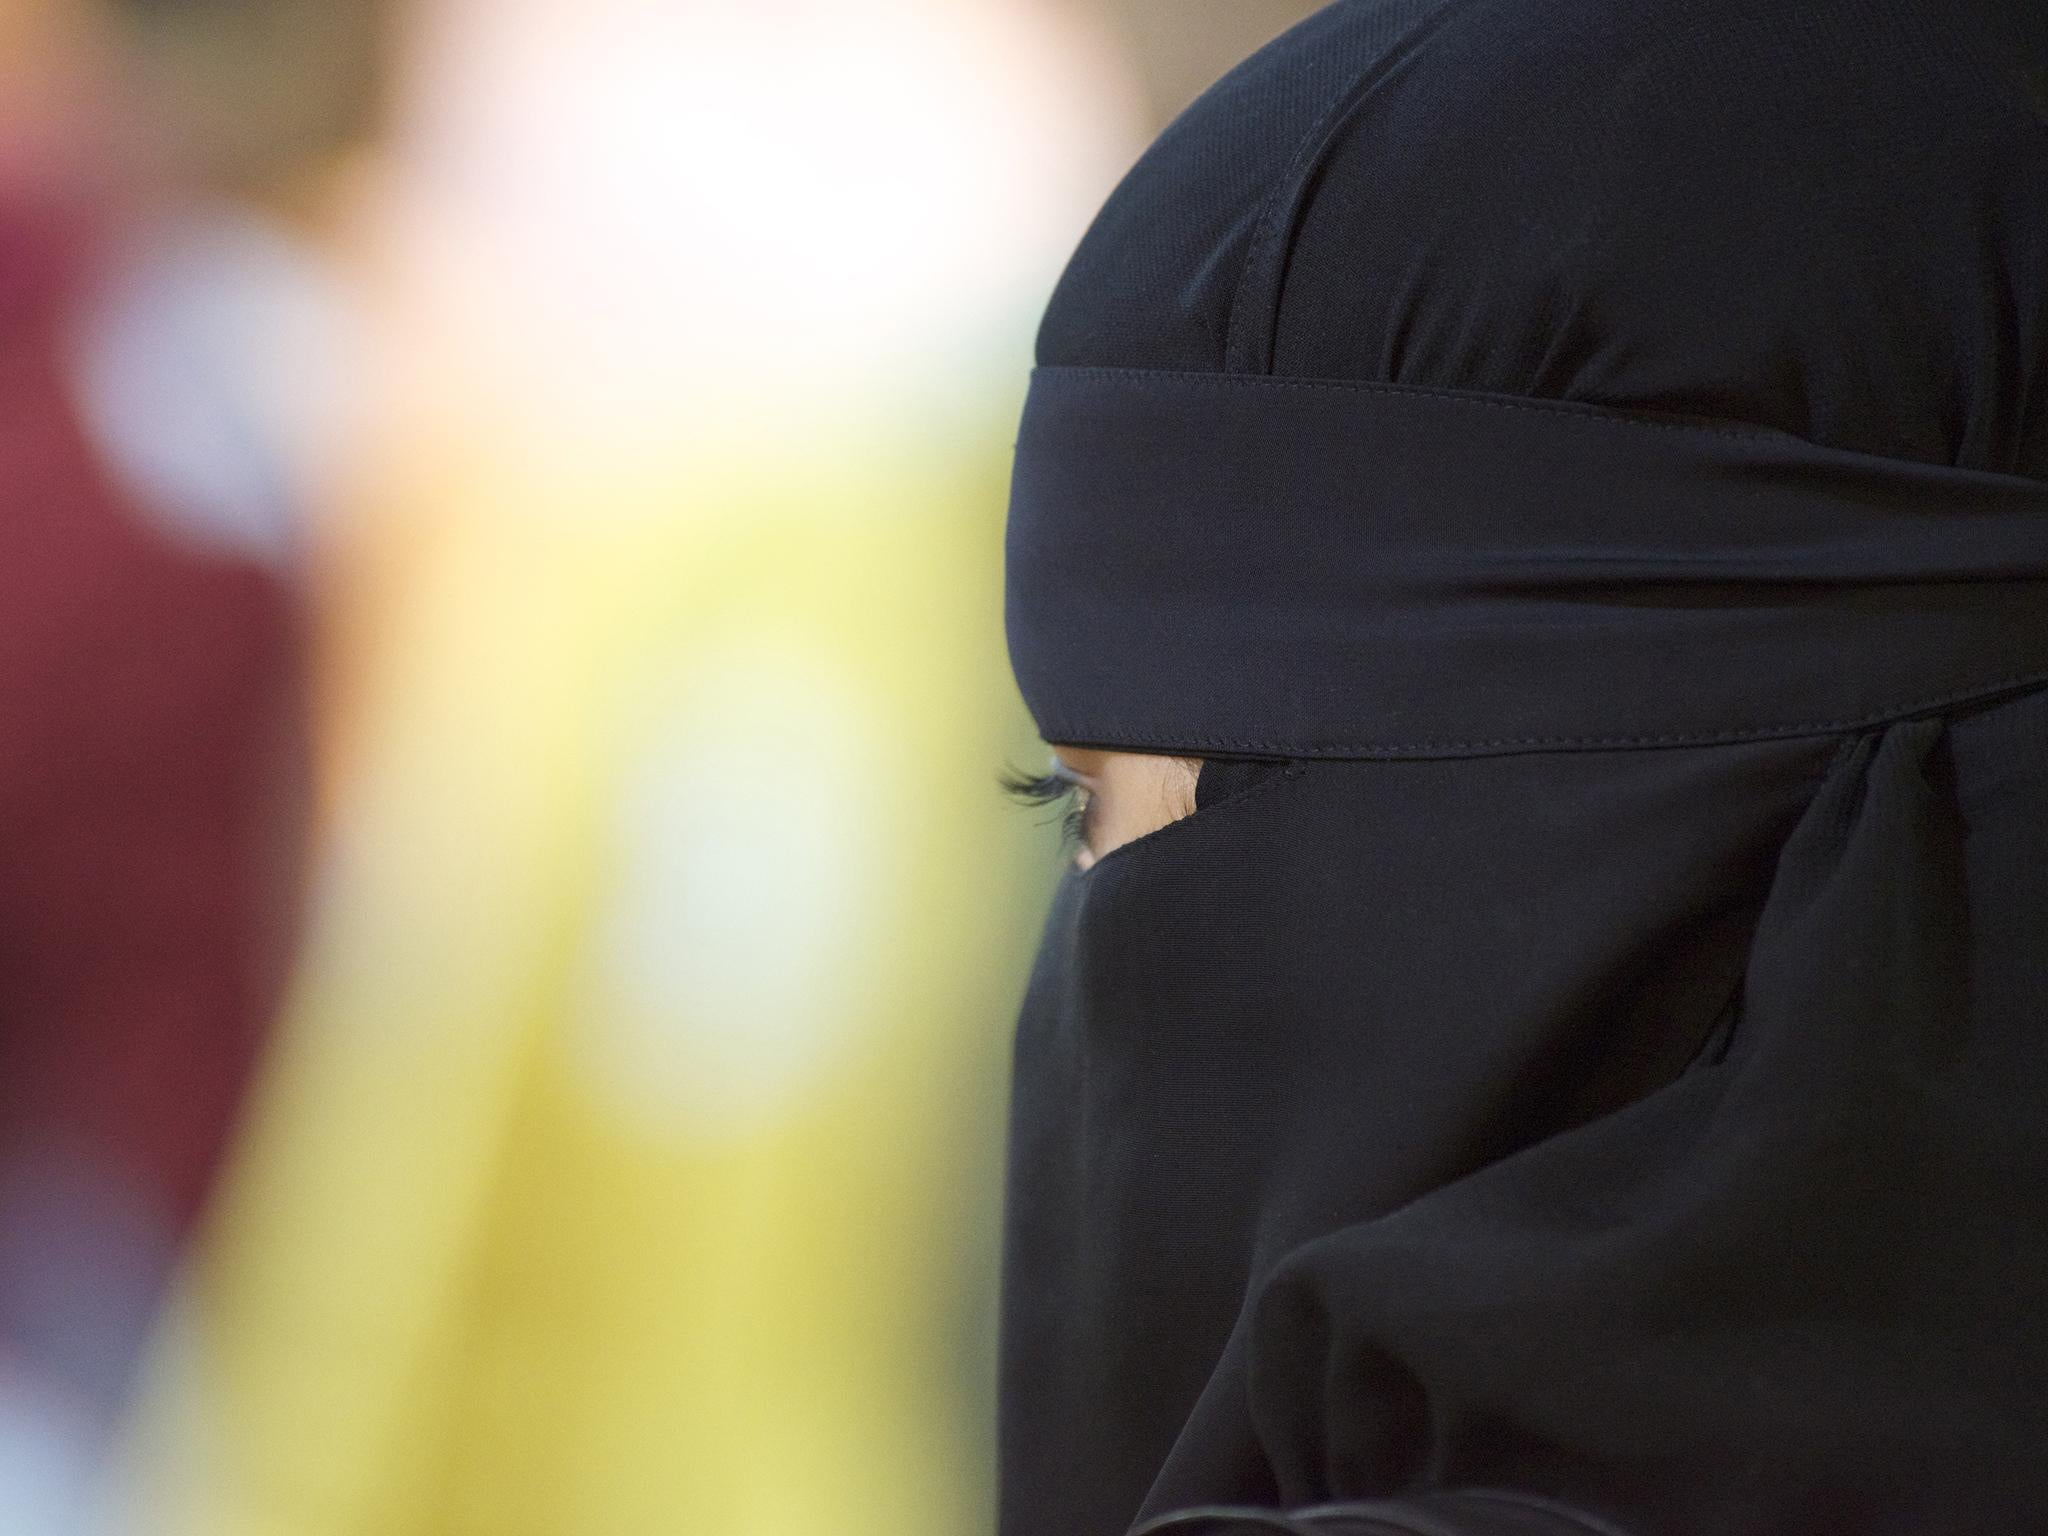 After the niqab: What life is like for French women who remove the